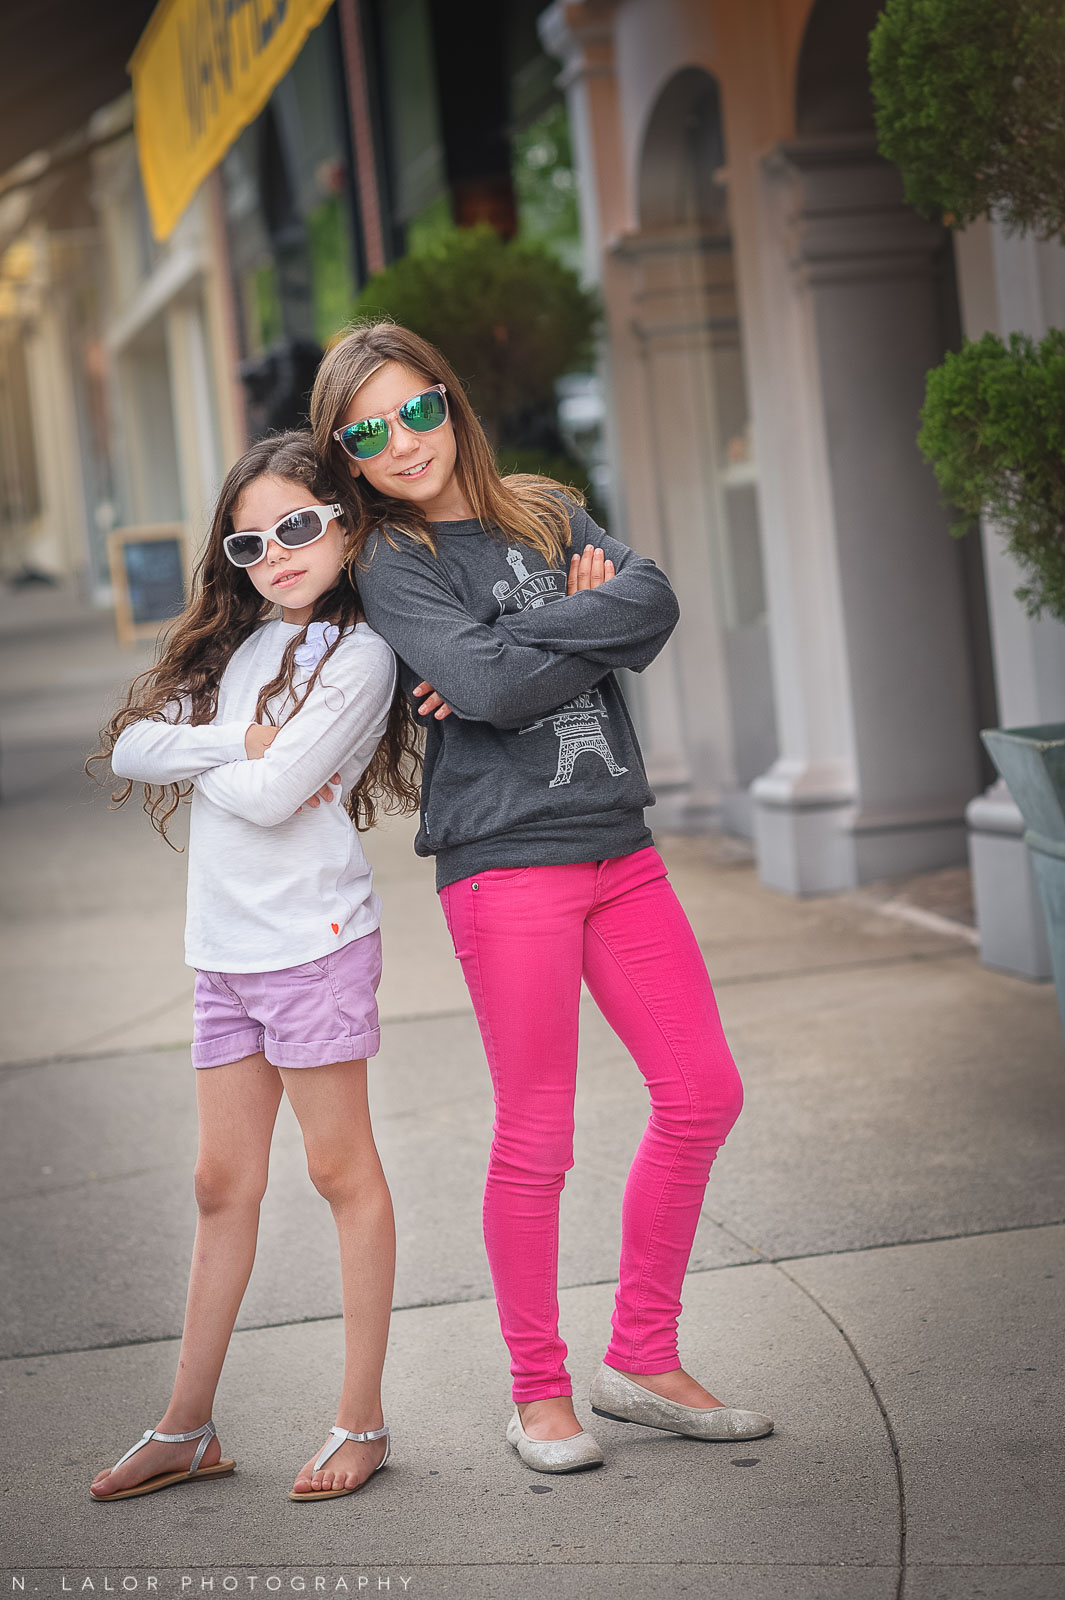 nlalor-photography-090314-fun-styled-tween-session-greenwich-avenue-connecticut-7.jpg